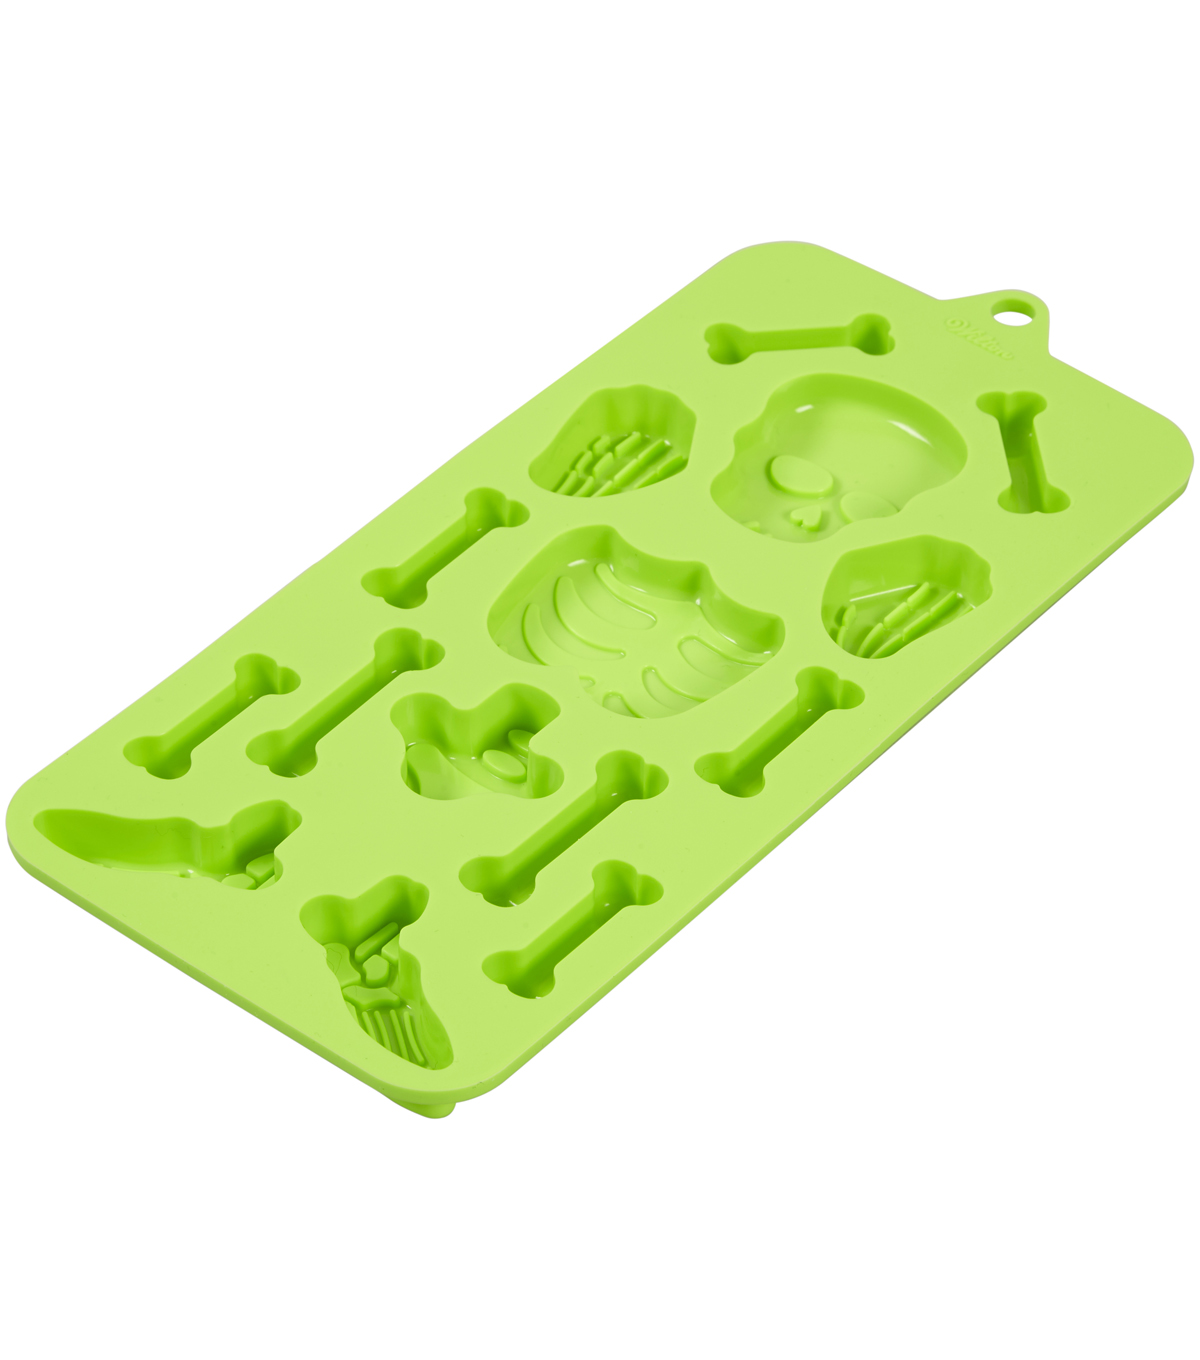 Wilton Maker\u0027s Halloween Silicone Candy Mold-Skeletons